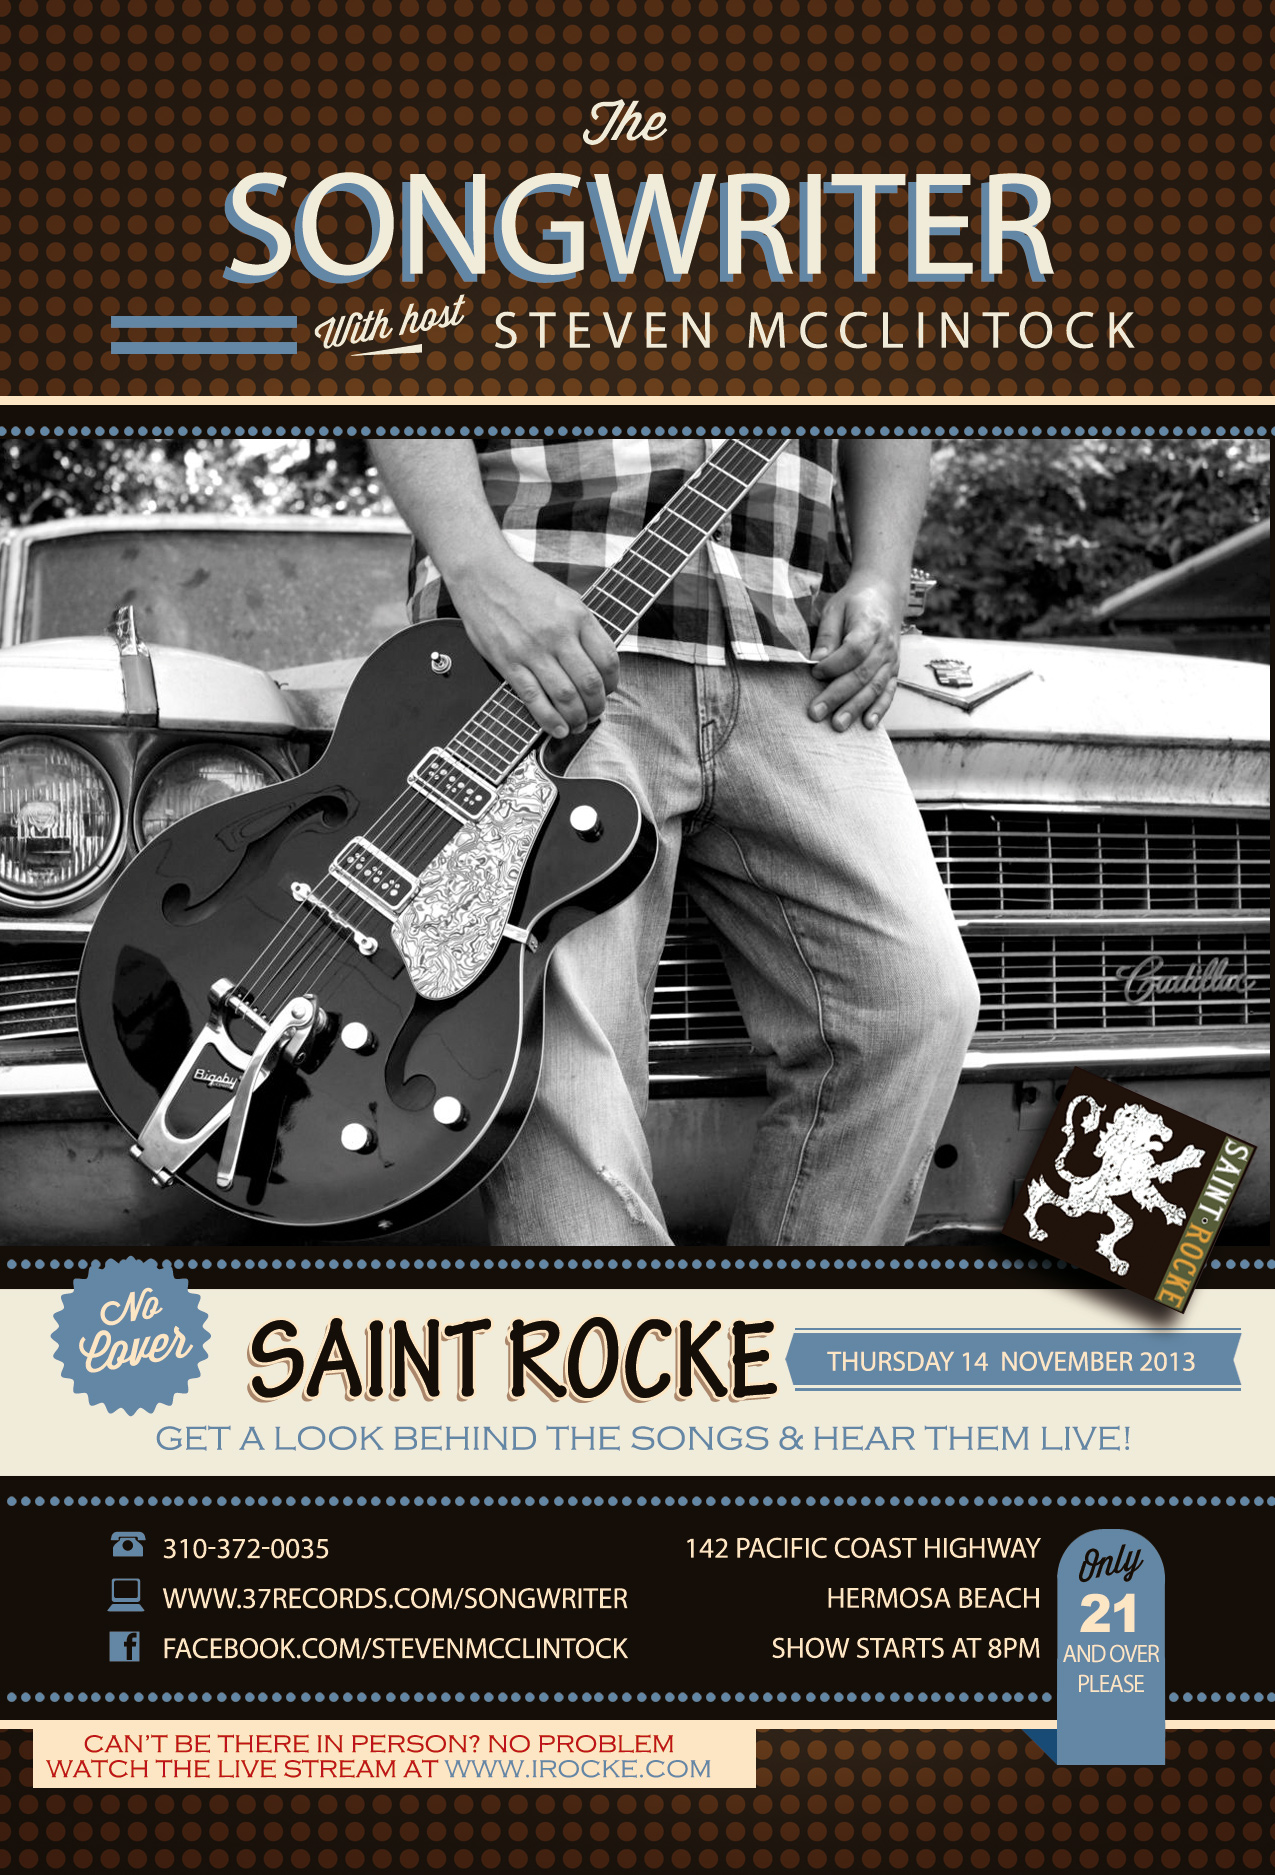 The Songwriter with host Steven McClintock